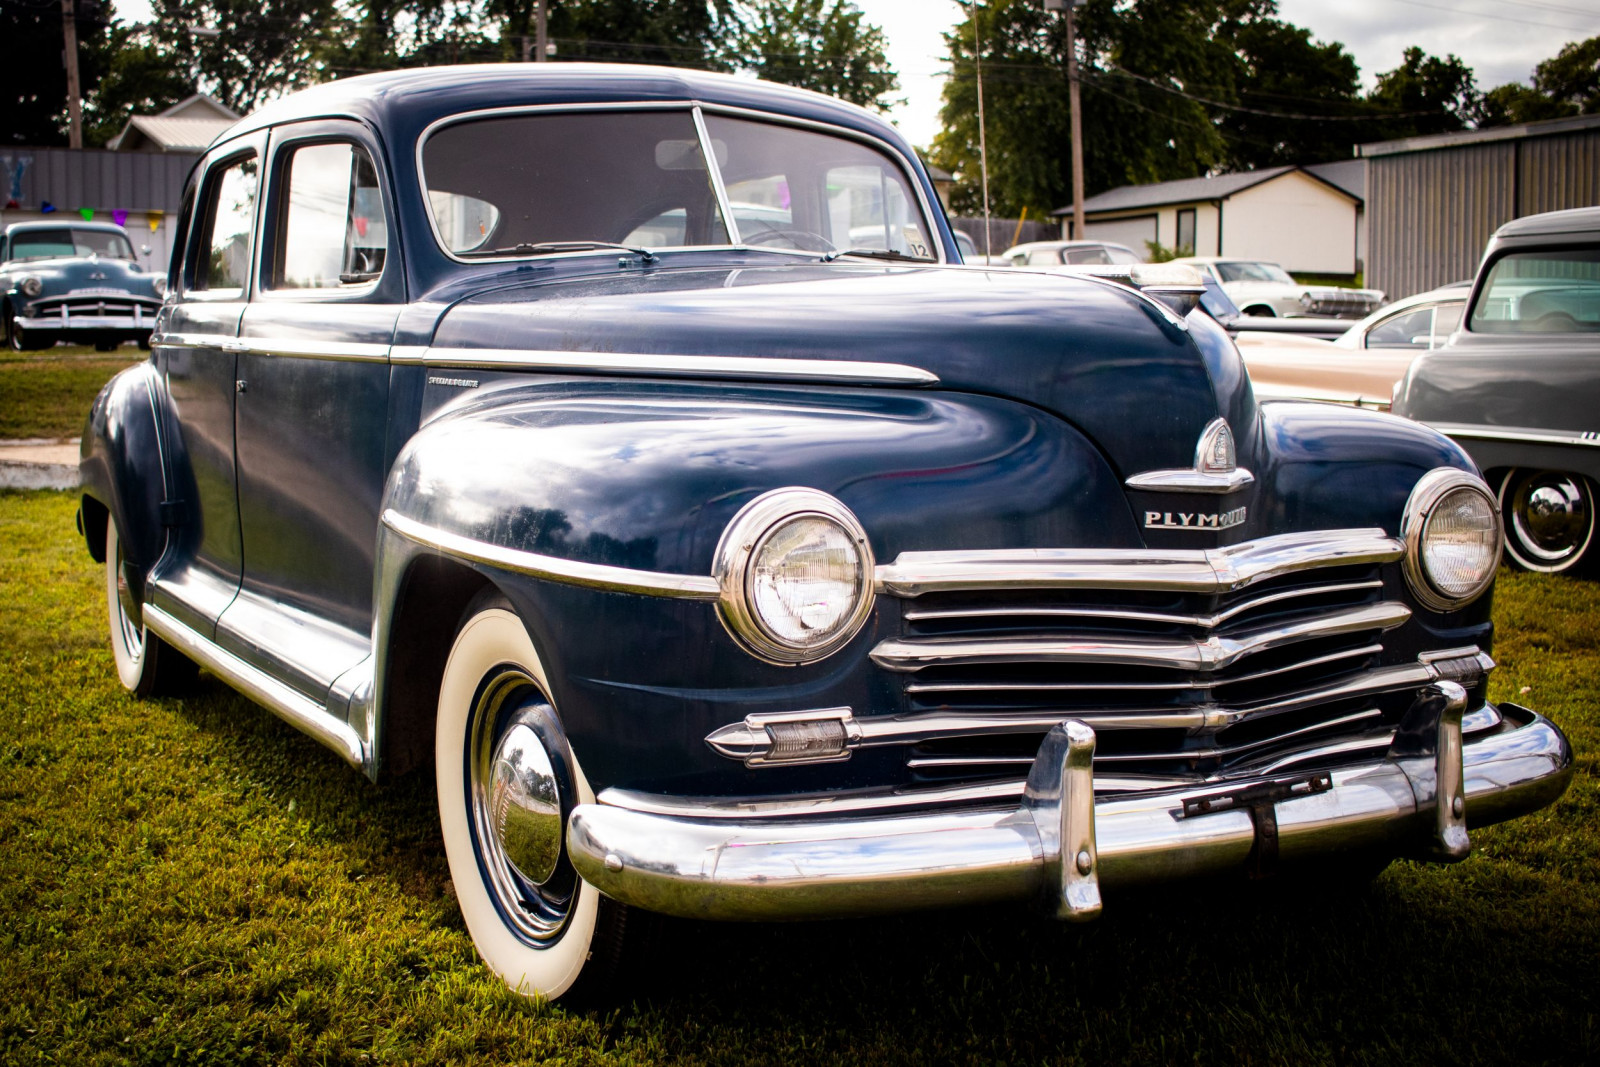 1947 Plymouth Special Deluxe  P15 4dr Sedan - Image 3